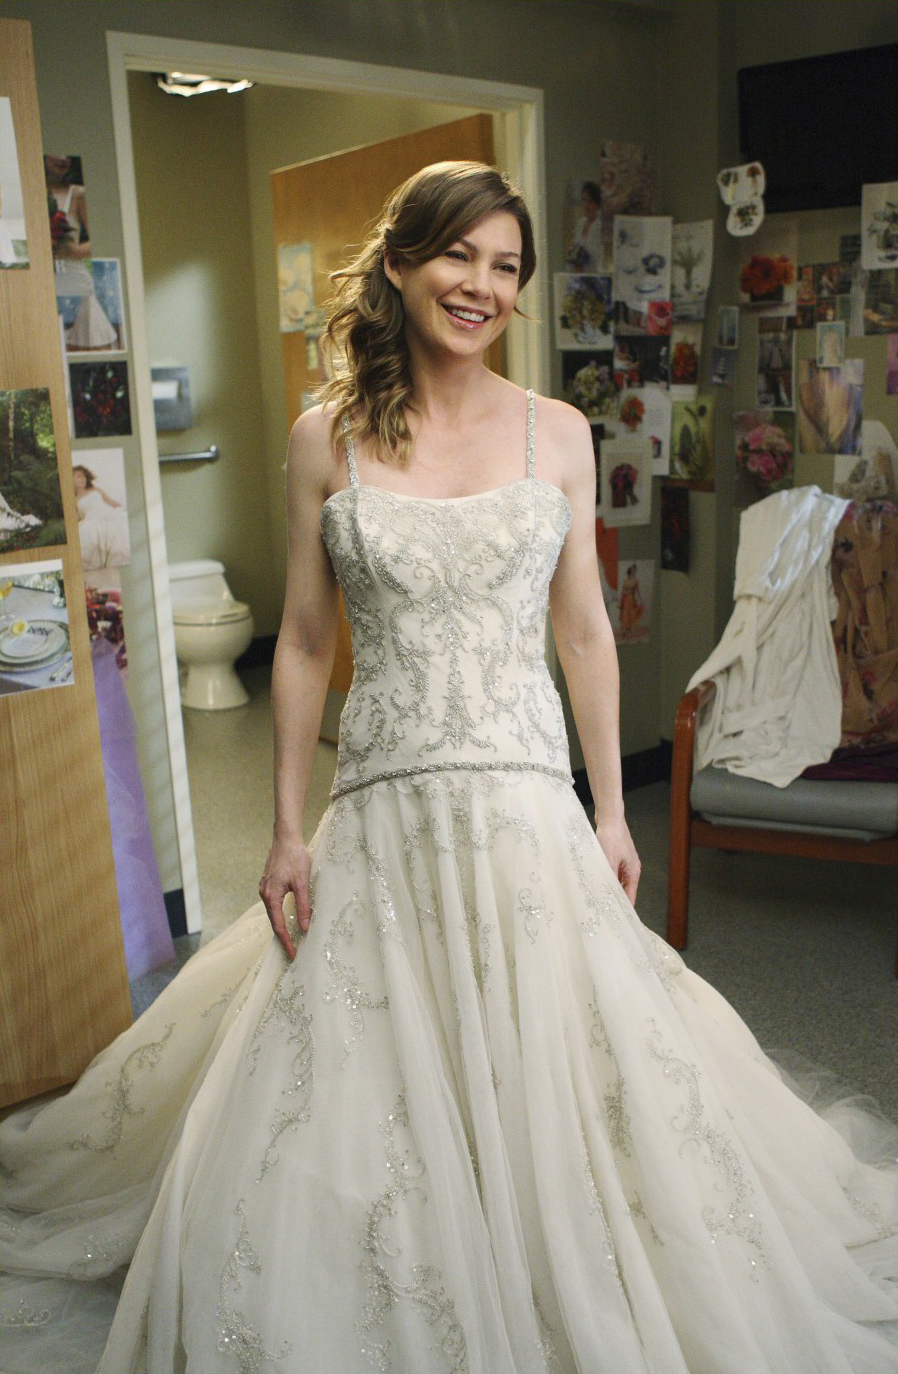 Merediths Wedding Dress